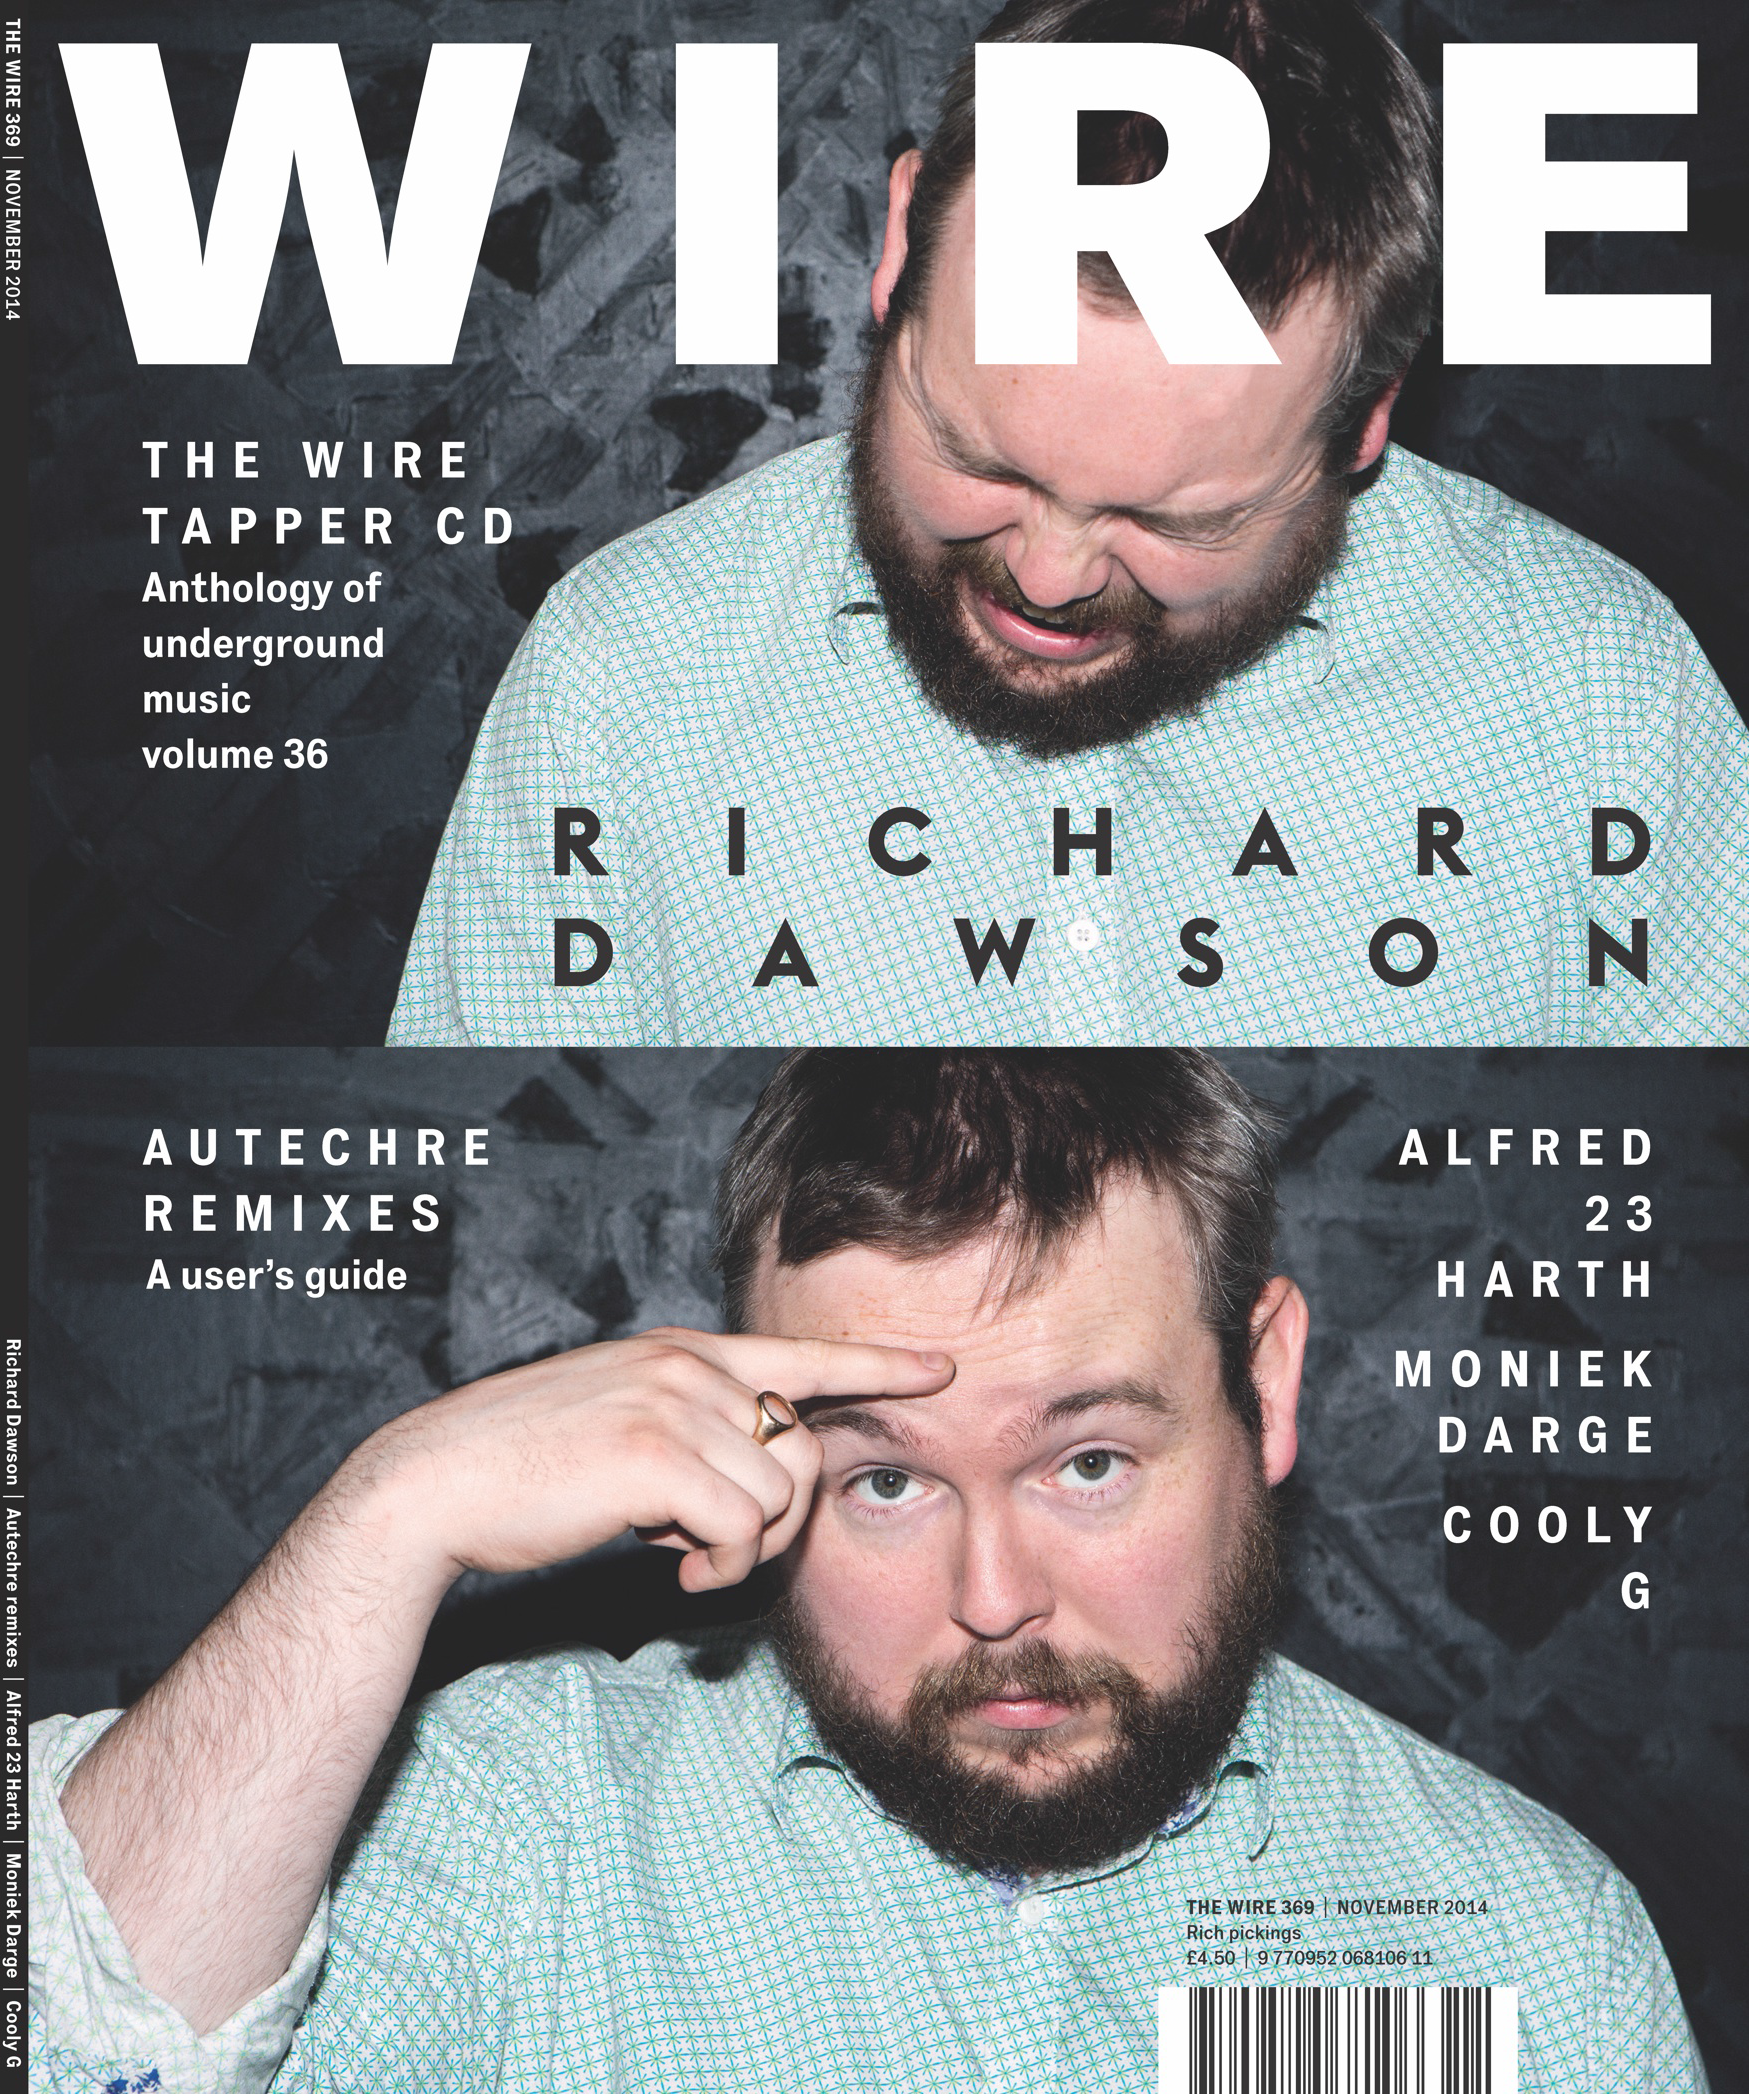 Richard Dawson cover feature for the Wire | Abi Bliss